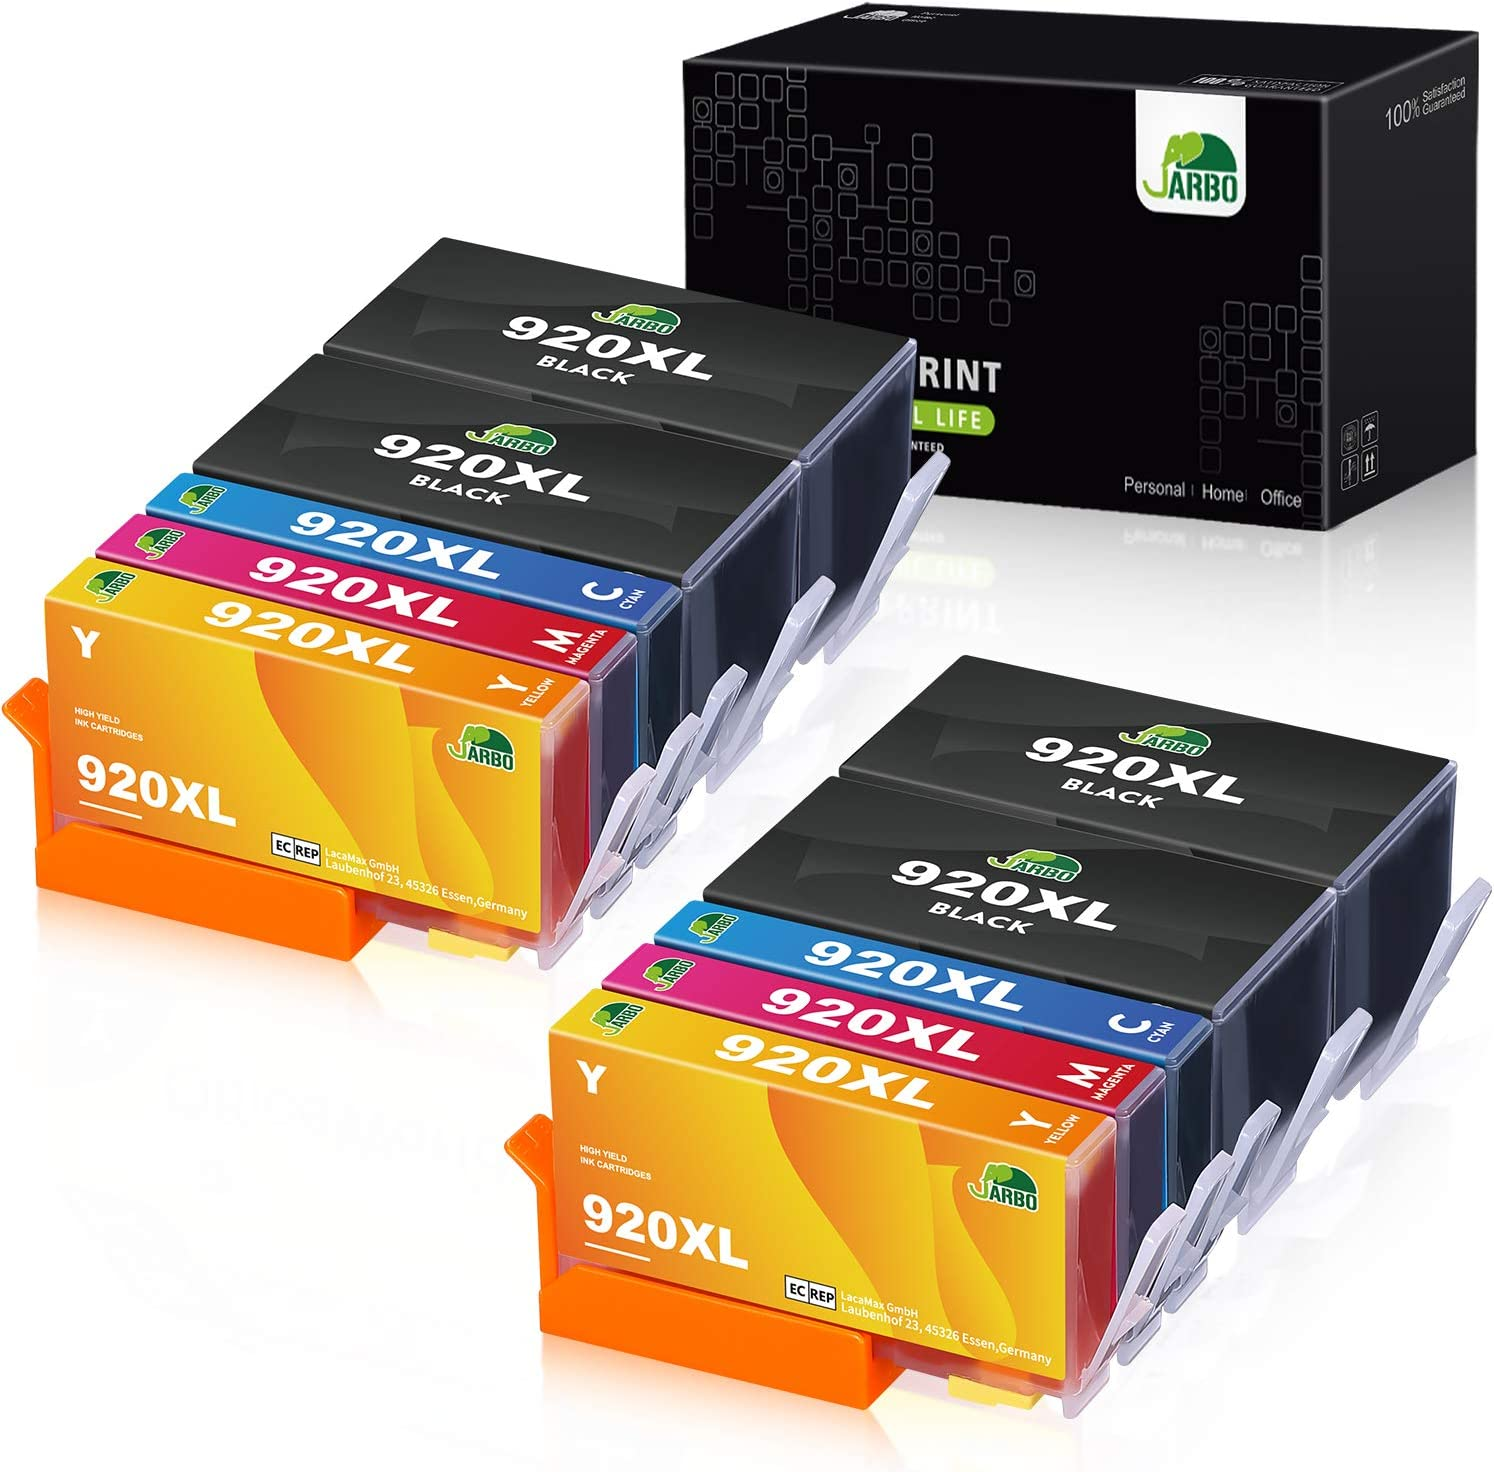 JARBO Compatible Ink Cartridge Replacement for HP 920XL High Yield, 10 Packs (4 Black 2 Cyan 2 Megenta 2 Yellow), Compatible with HP Officejet 6500 6000 7000 7500 6500A 7500A Printer